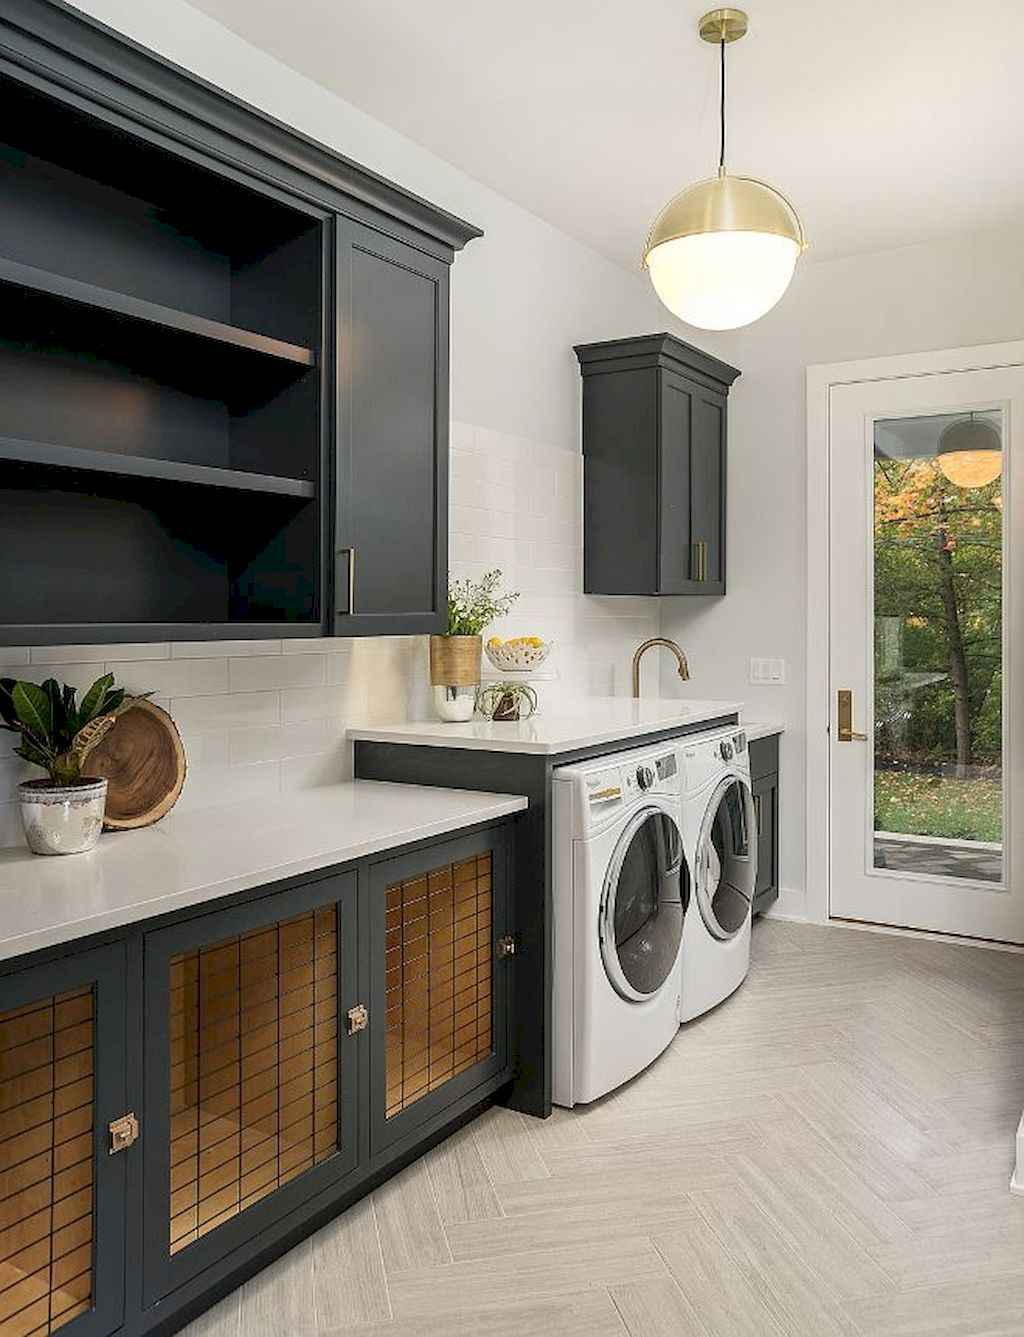 45 Rustic Farmhouse Laundry Room Design Ideas and Makeover (29)